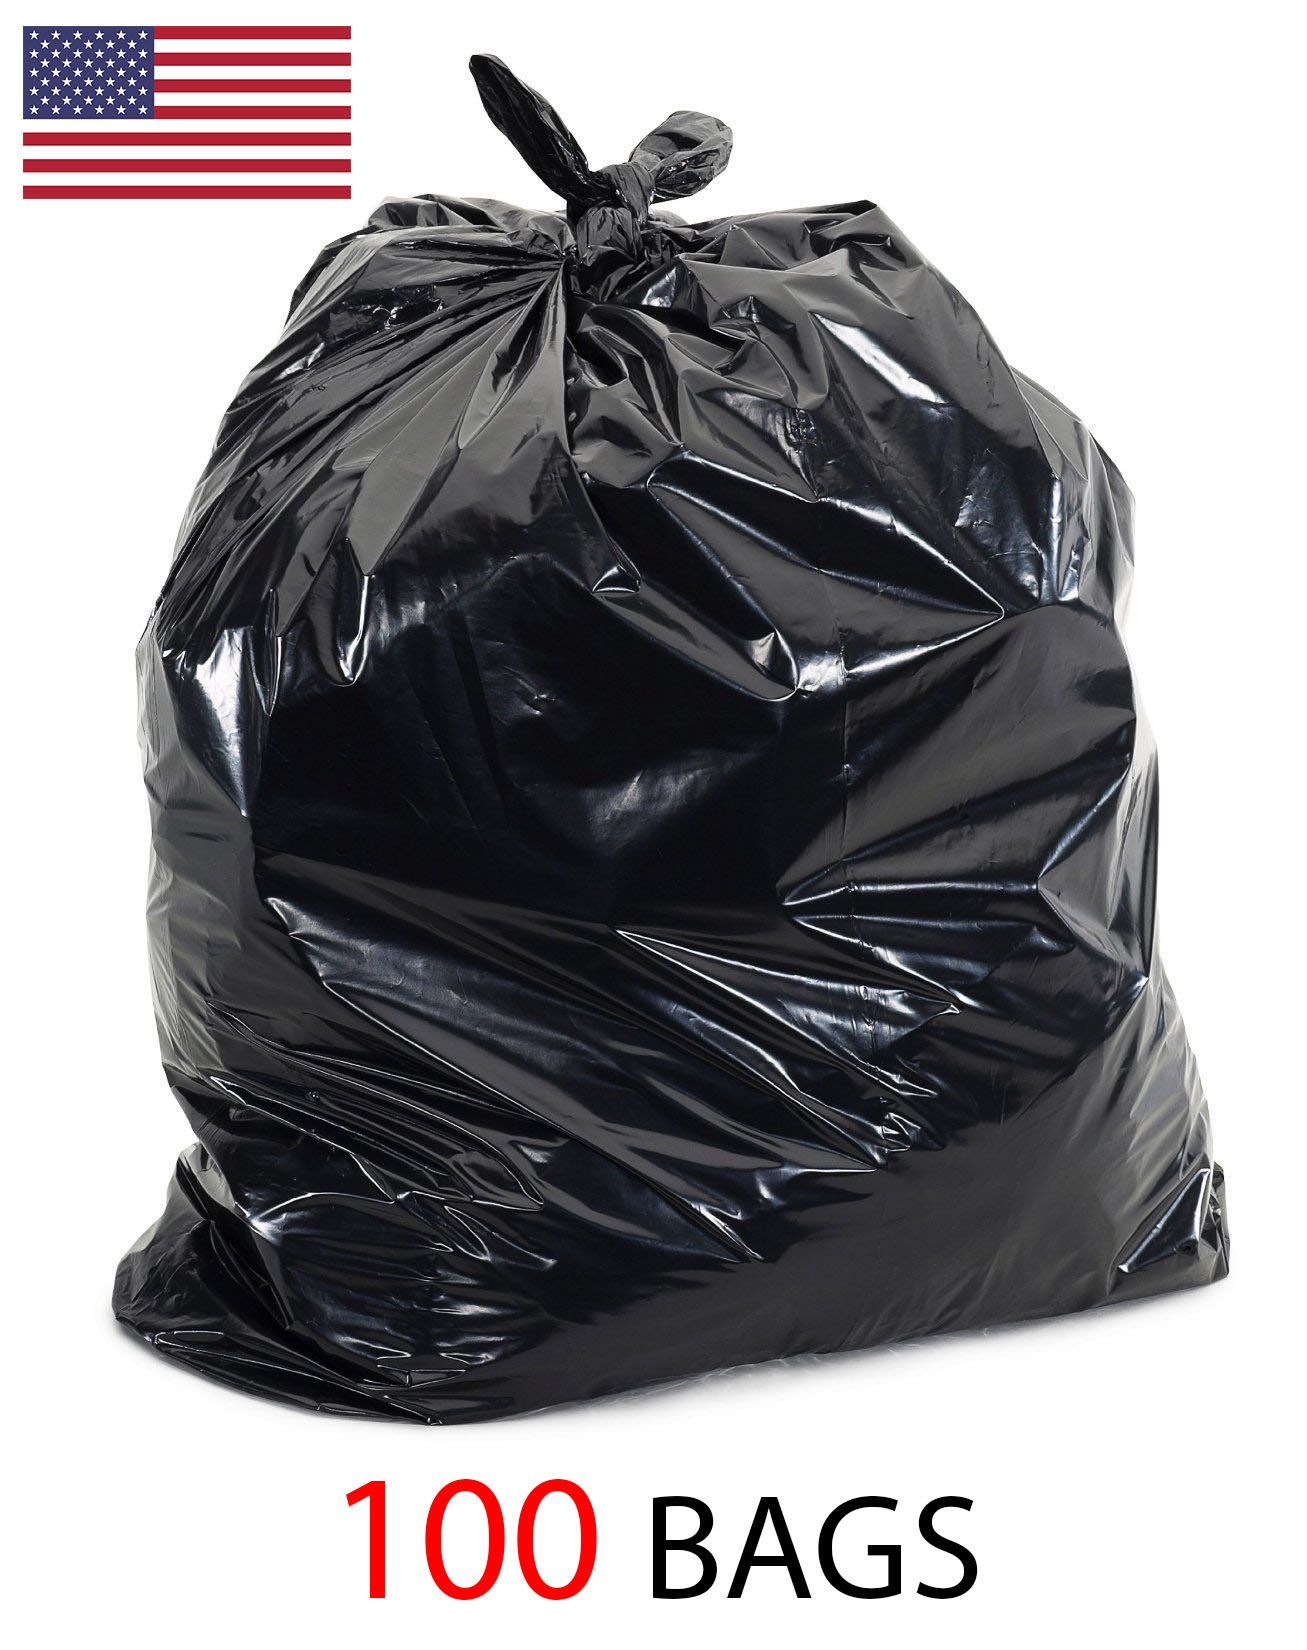 39 Gallon 1.5 Mil Strong Trash Bags, Lawn Leaf Bags, Heavy Duty Trash Bag, Contractor Garbage Bag (100) by Ox Plastics